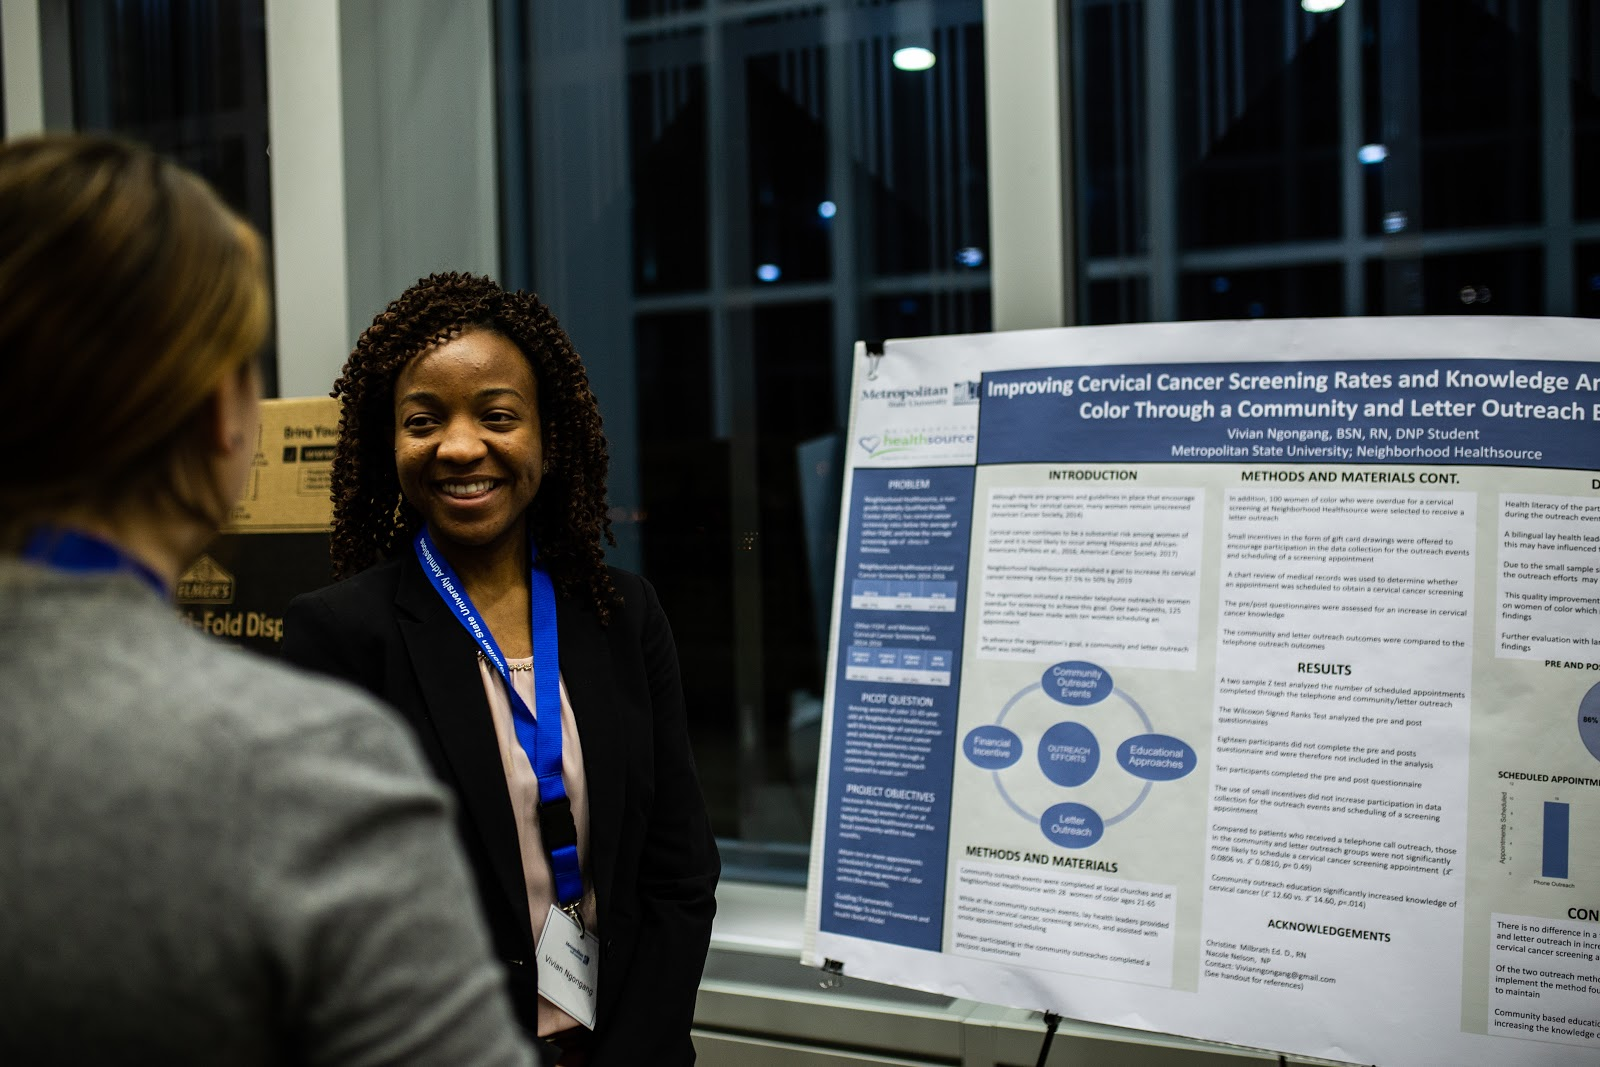 Doctoral nursing student Vivian Ngongang answers questions about her investigation into improving cervical cancer screening rates among women of color. Photo by Eli Bartz